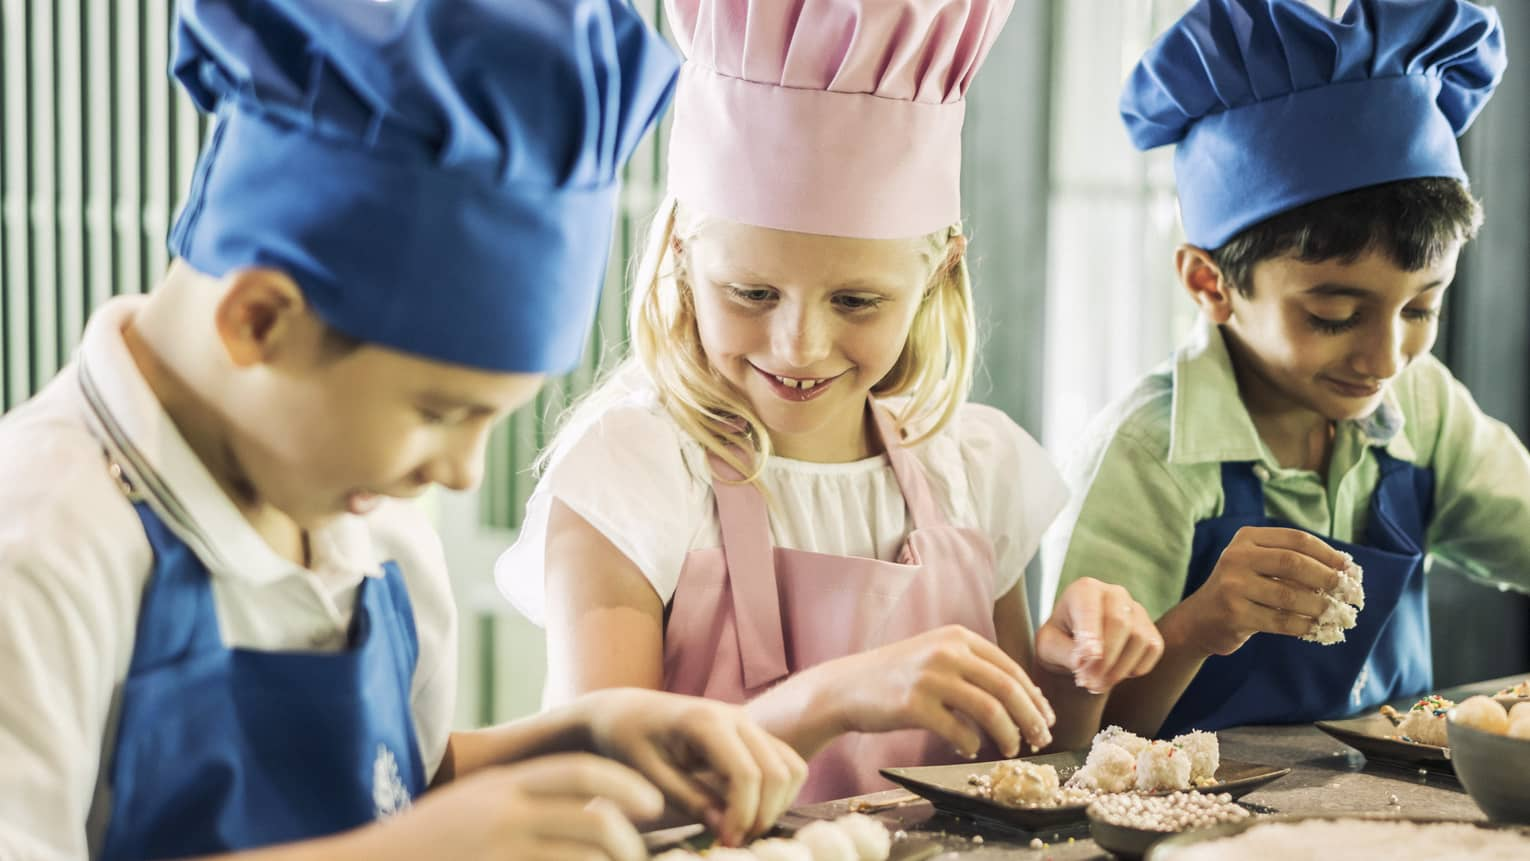 Three children in chef hats, aprons roll pastries at counter